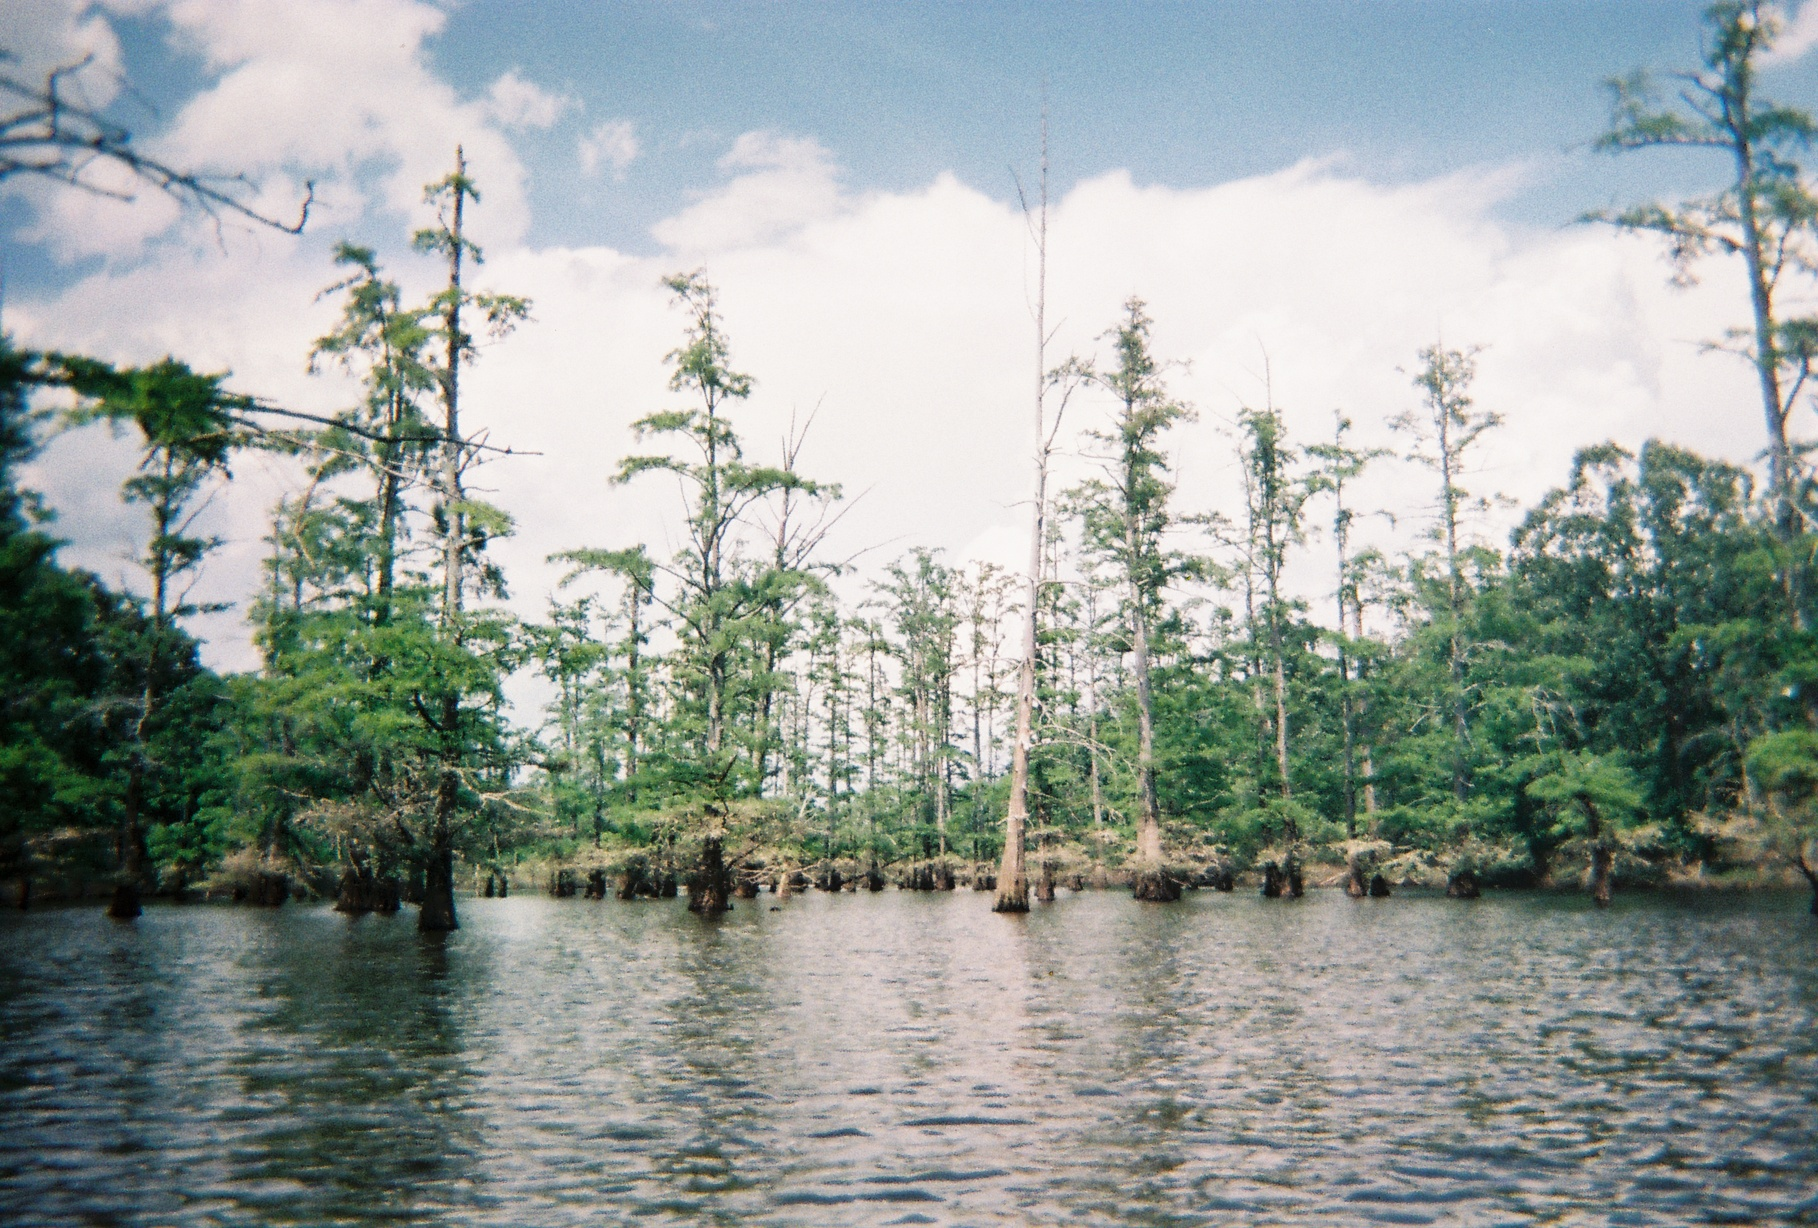 http://upload.wikimedia.org/wikipedia/commons/0/03/Kybaldcypress.jpg